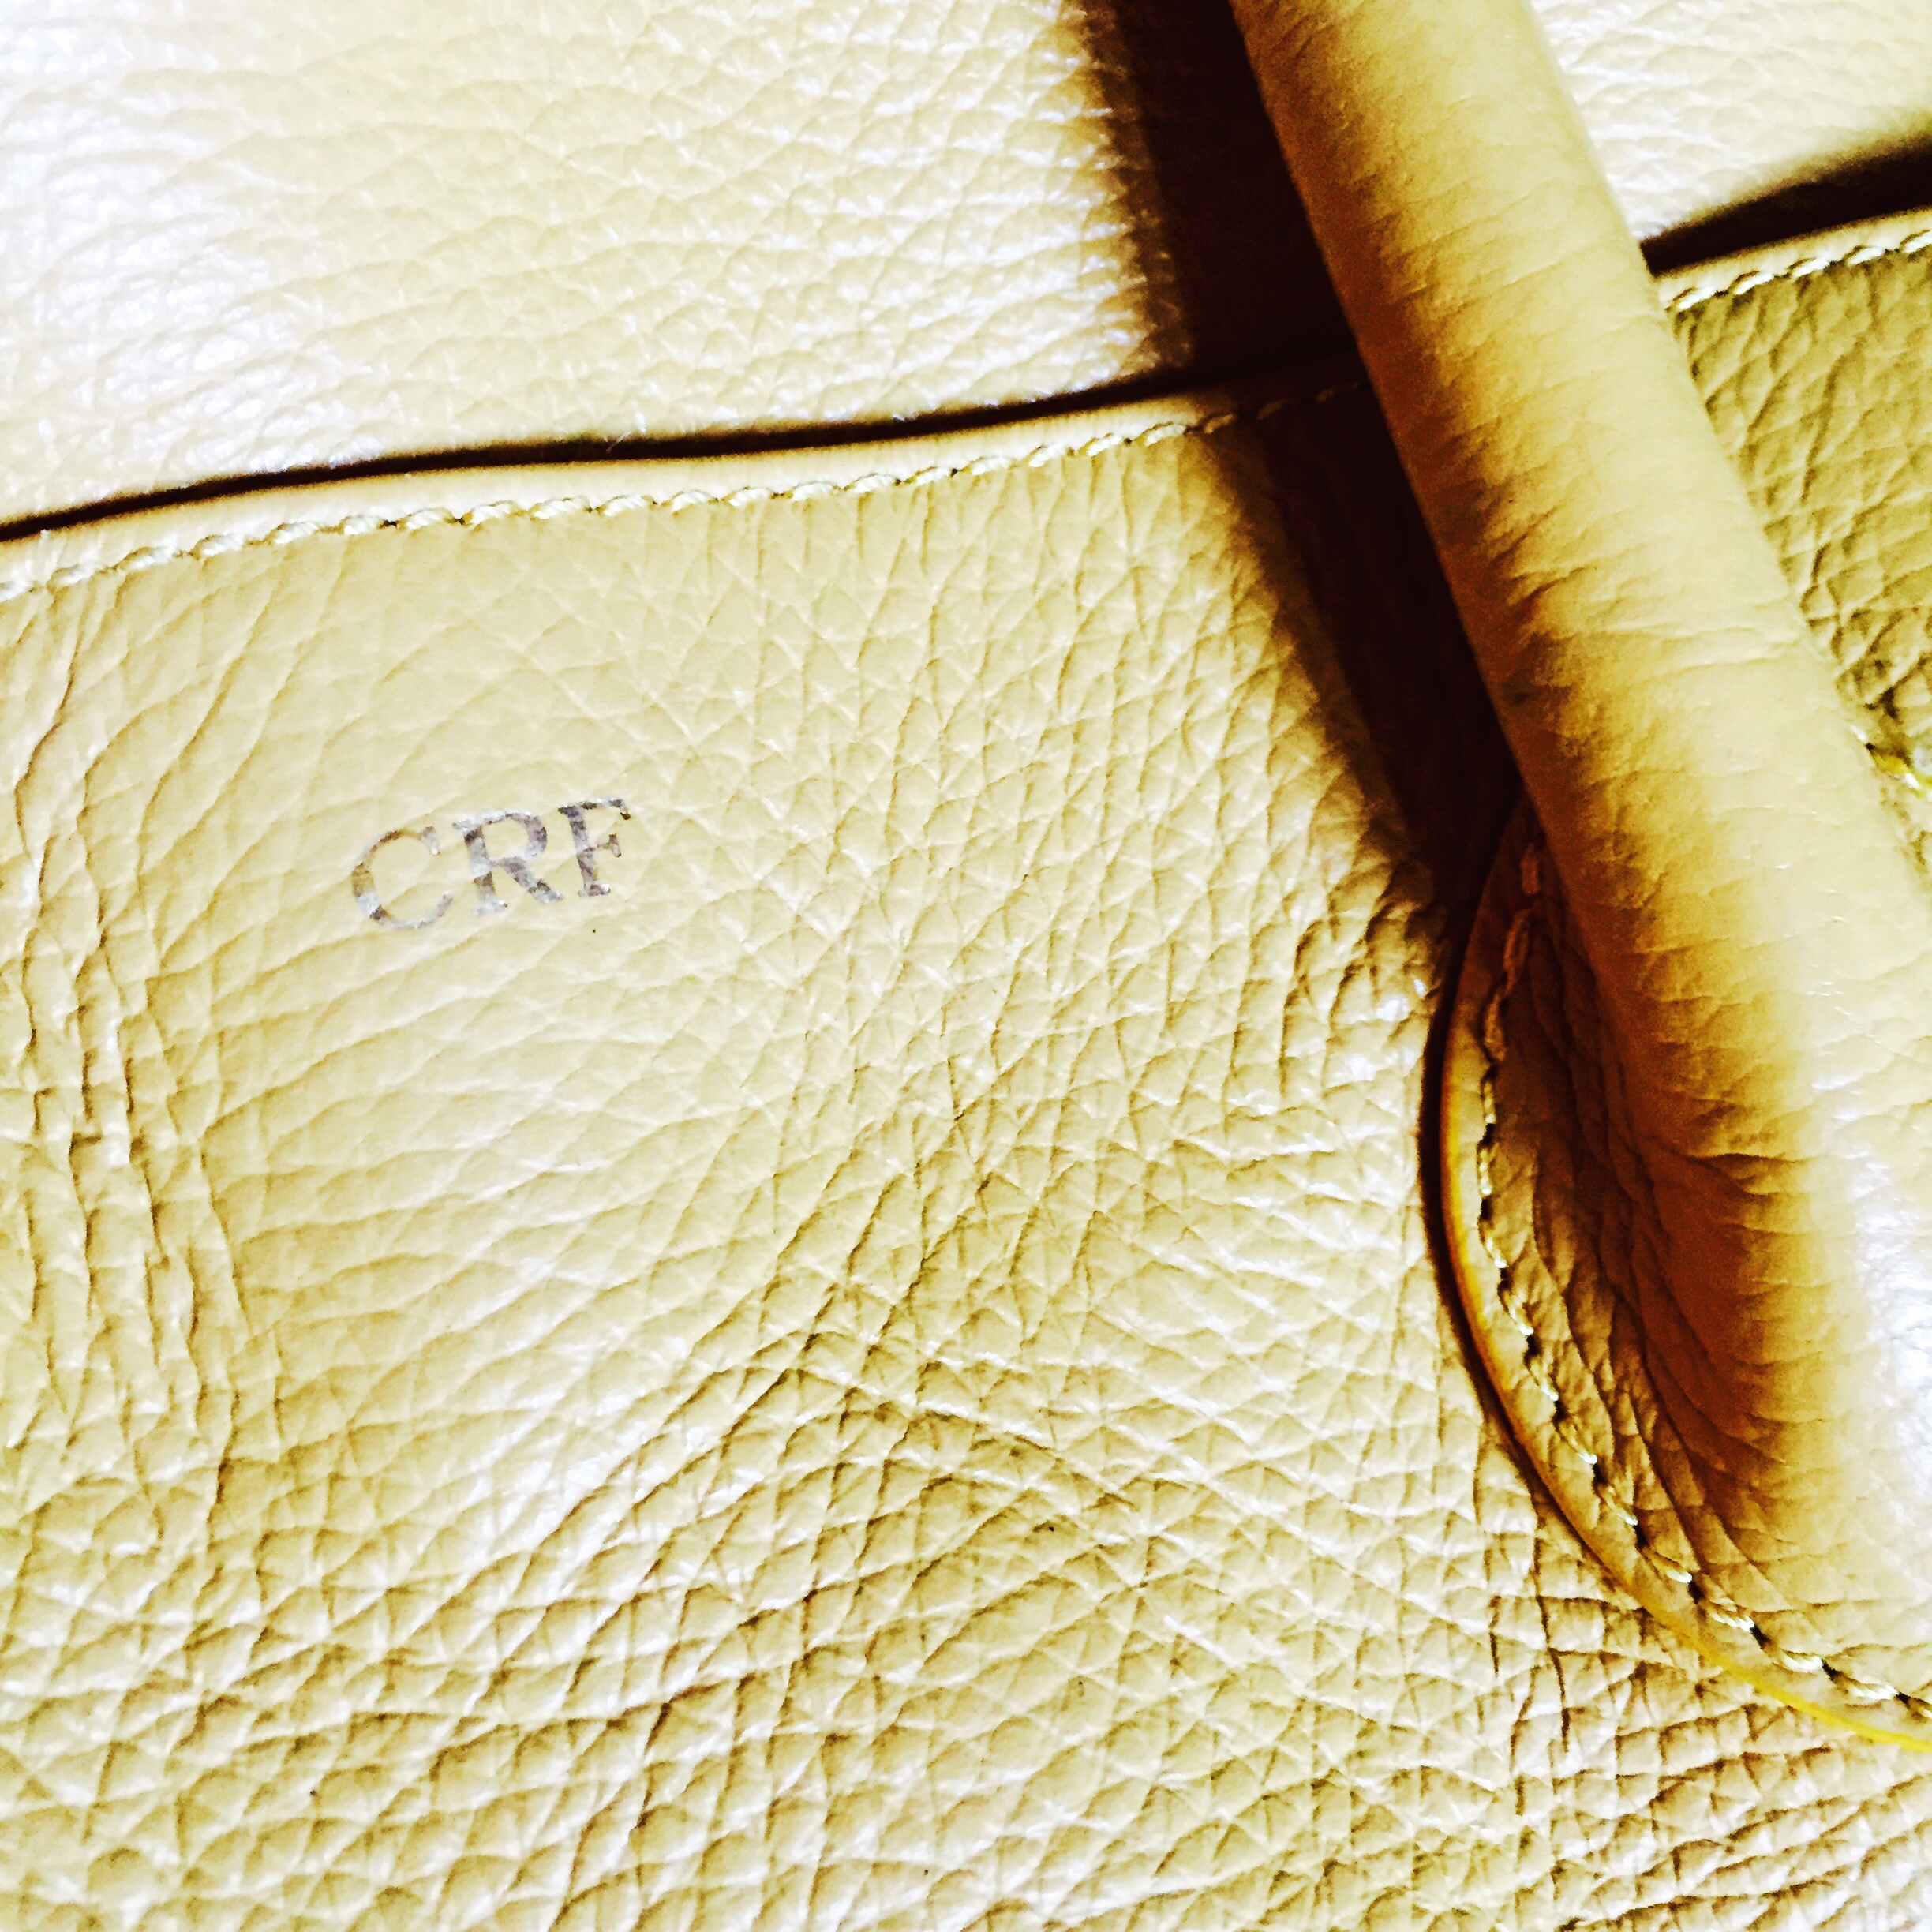 blog 5 things monogram purse.JPG